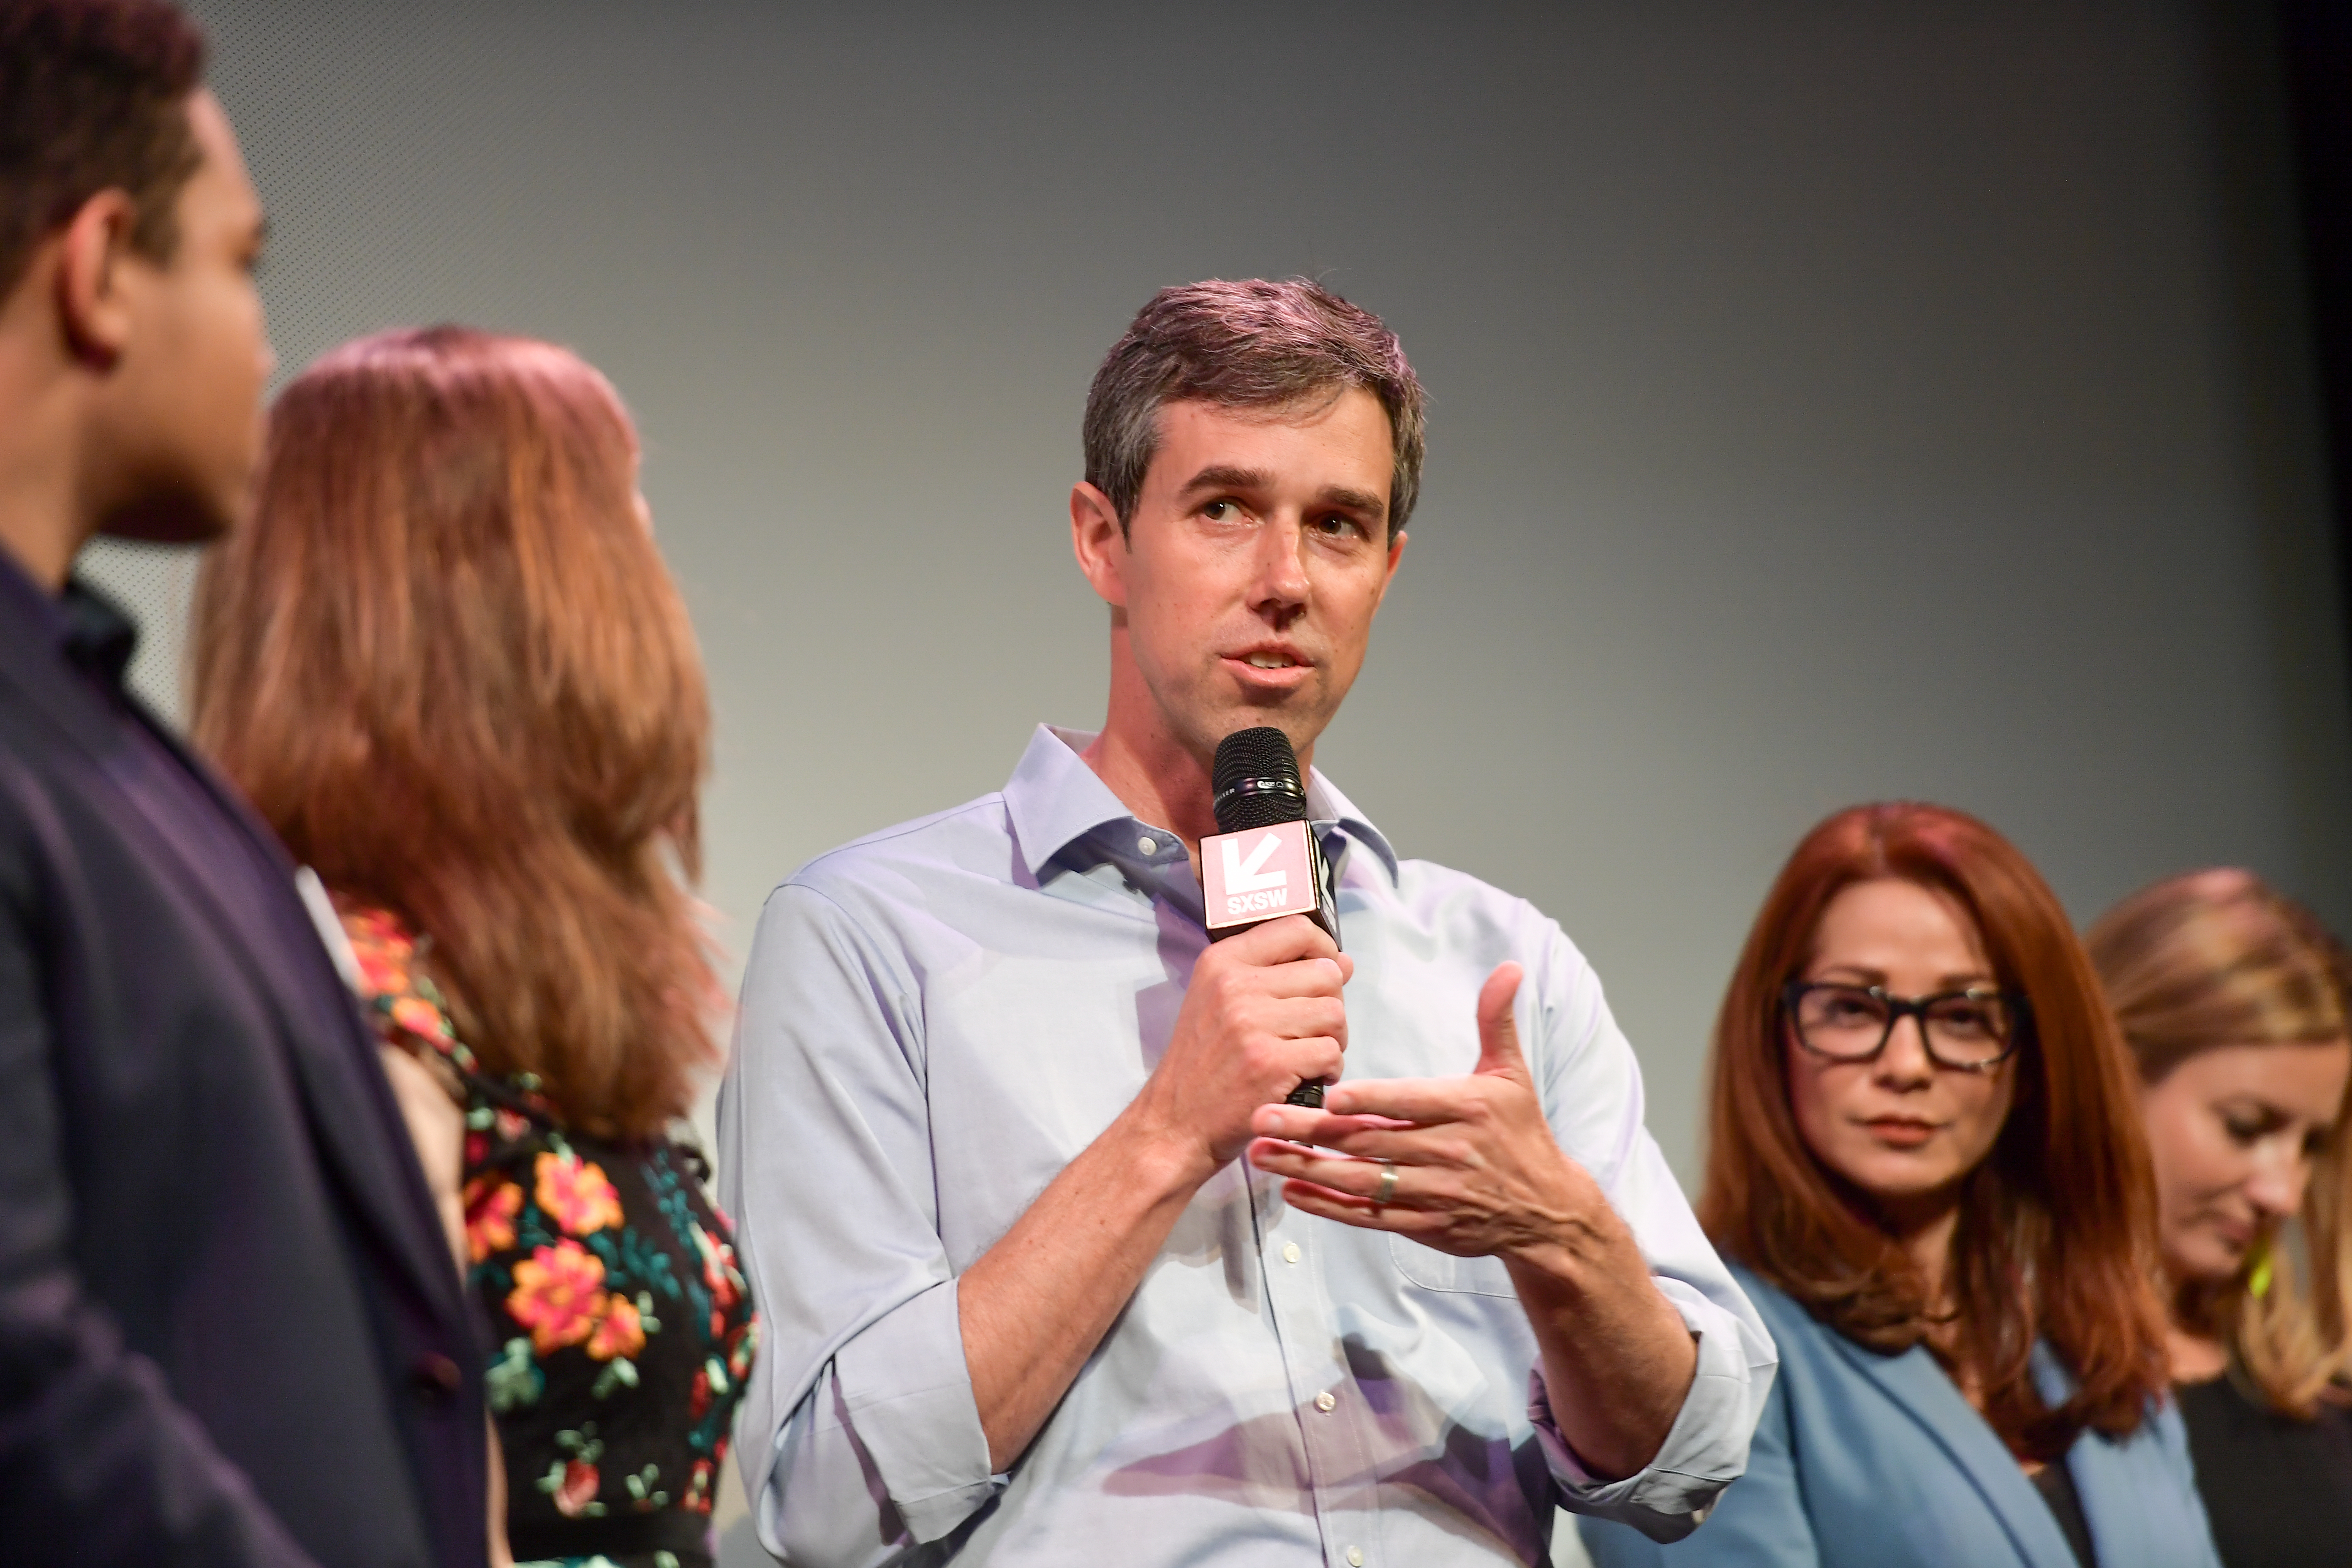 Beto O'Rourke attends the  Running with Beto  Premiere 2019 SXSW Conference and Festivals at Paramount Theatre on March 09, 2019 in Austin, Texas.